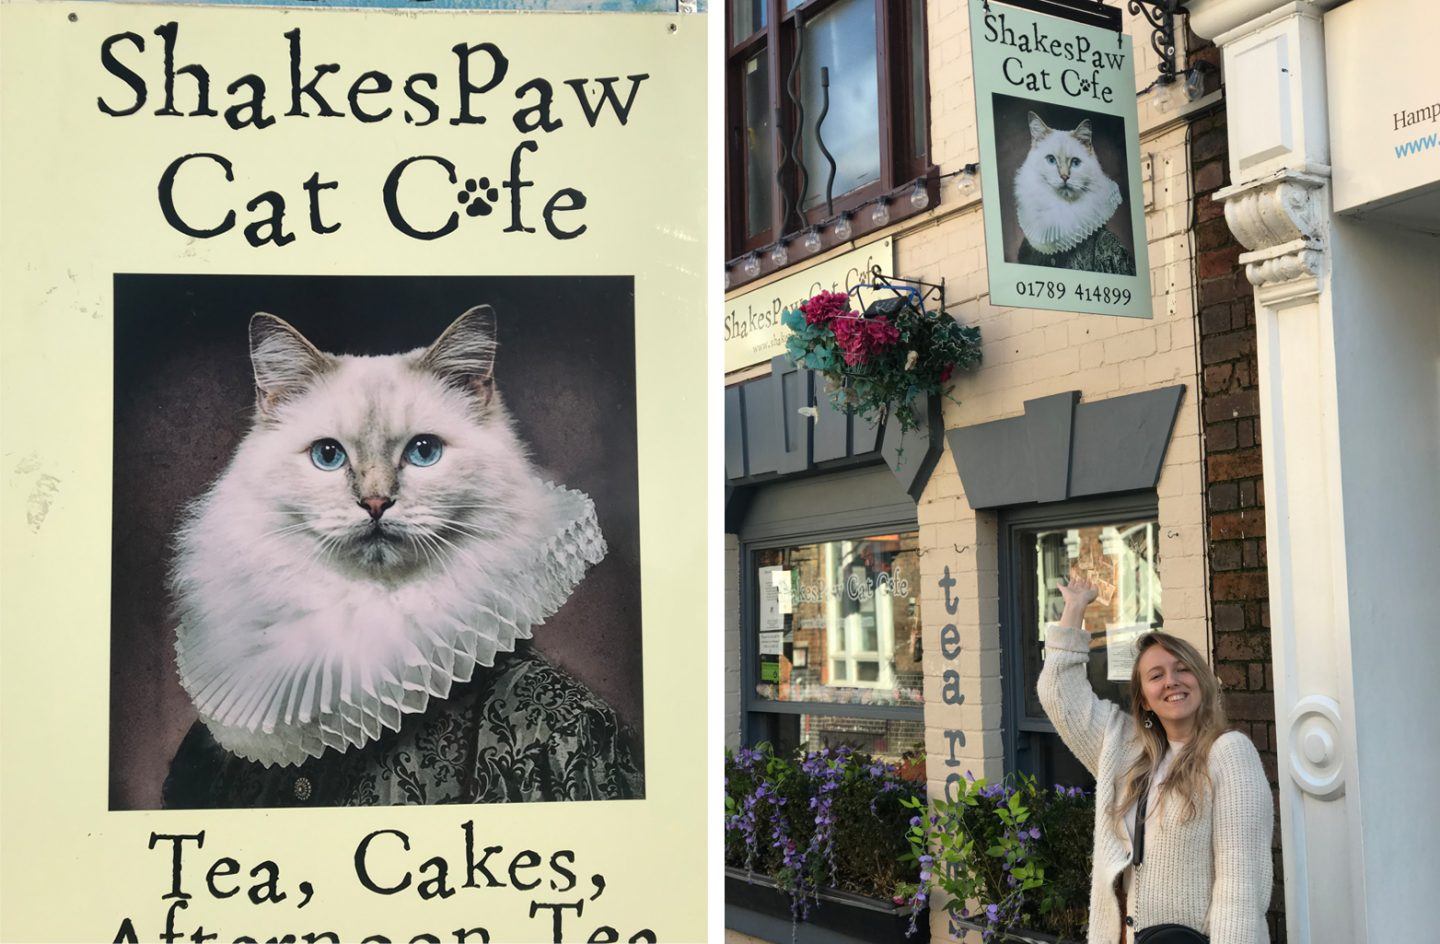 Shakespaw Cat Cafe Stratford Upon Avon